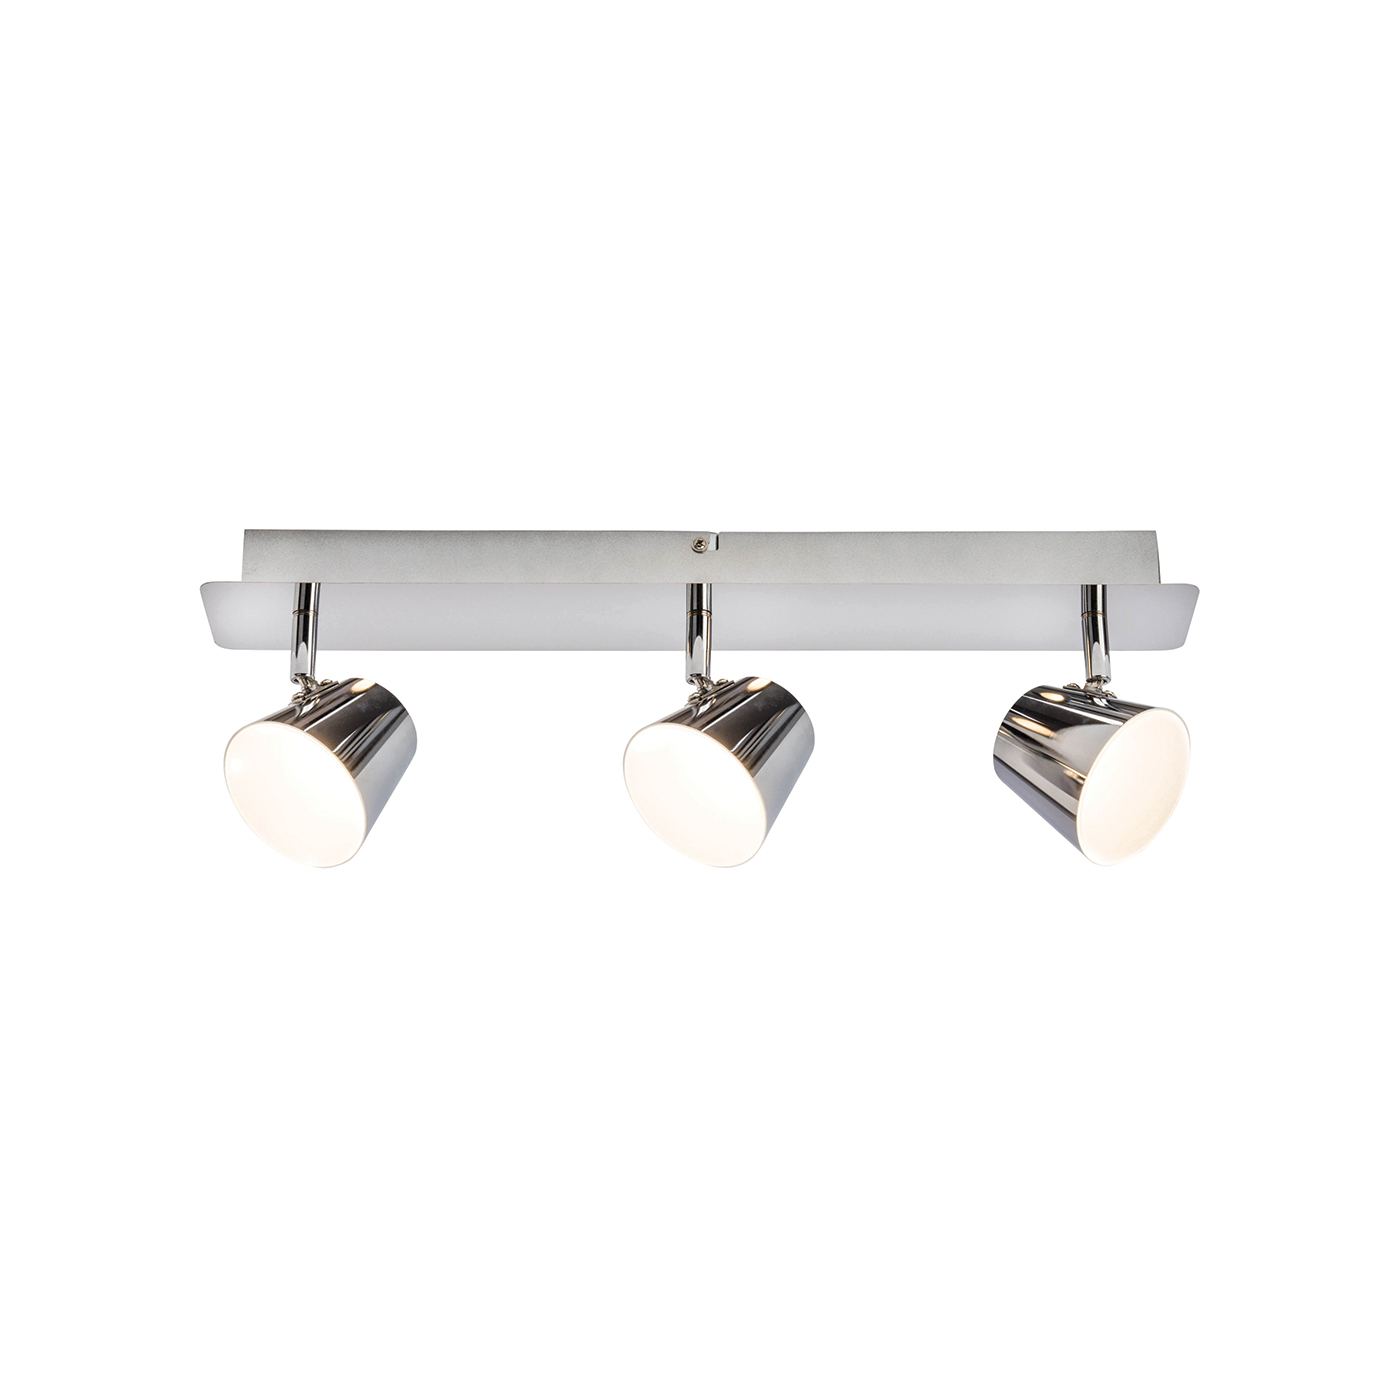 Endon Torsion ceiling spotlight plate 3x 5W Chrome effect plate frosted acrylic